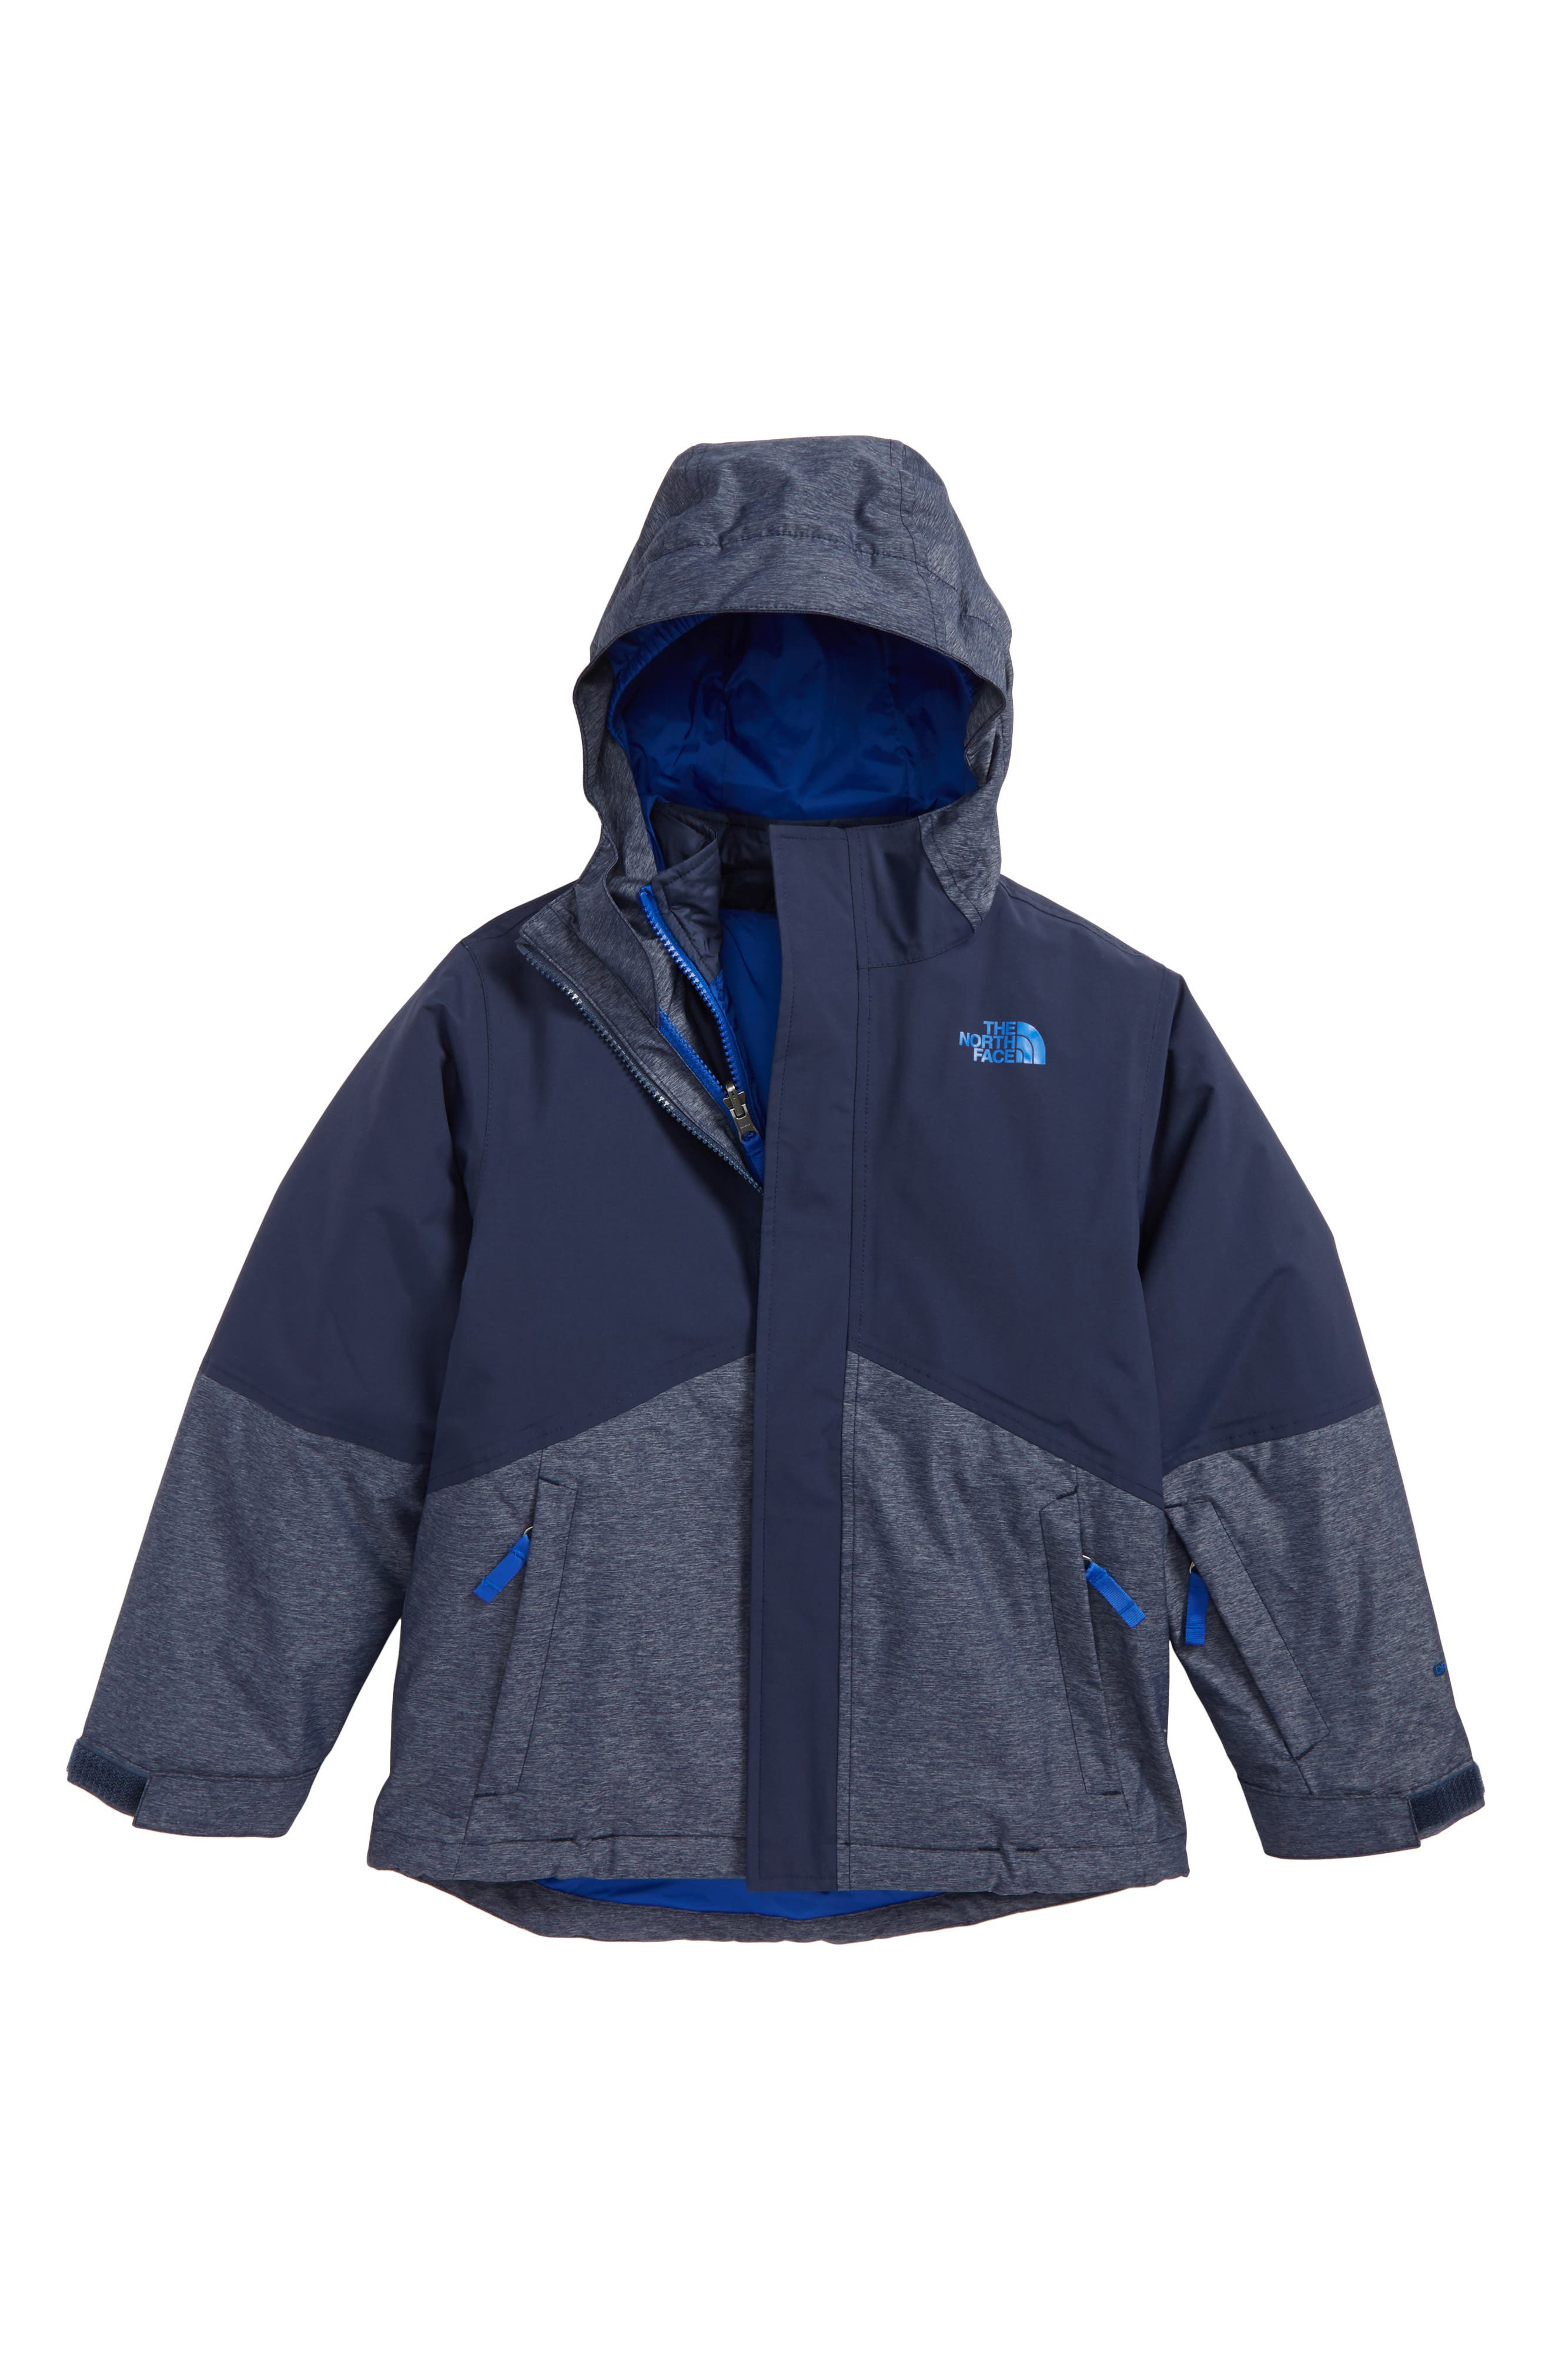 Alternate Image 1 Selected - The North Face Boundary TriClimate® 3-in-1 Jacket (Big Boys)